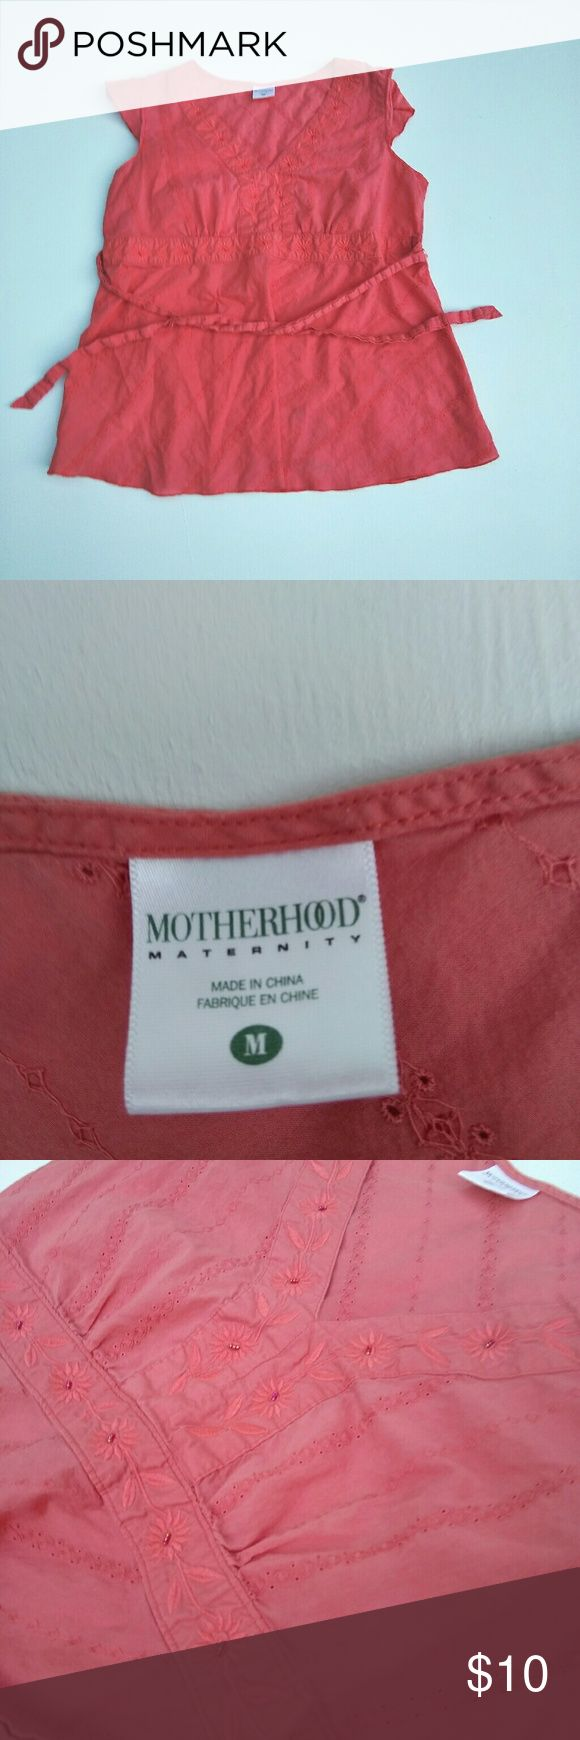 Motherhood Maternity Short Sleeve Shirt (Size: M) Pink motherhood maternity short sleeve shirt. In perfect used condition. No rips or stains. True to color Motherhood Maternity Tops Blouses